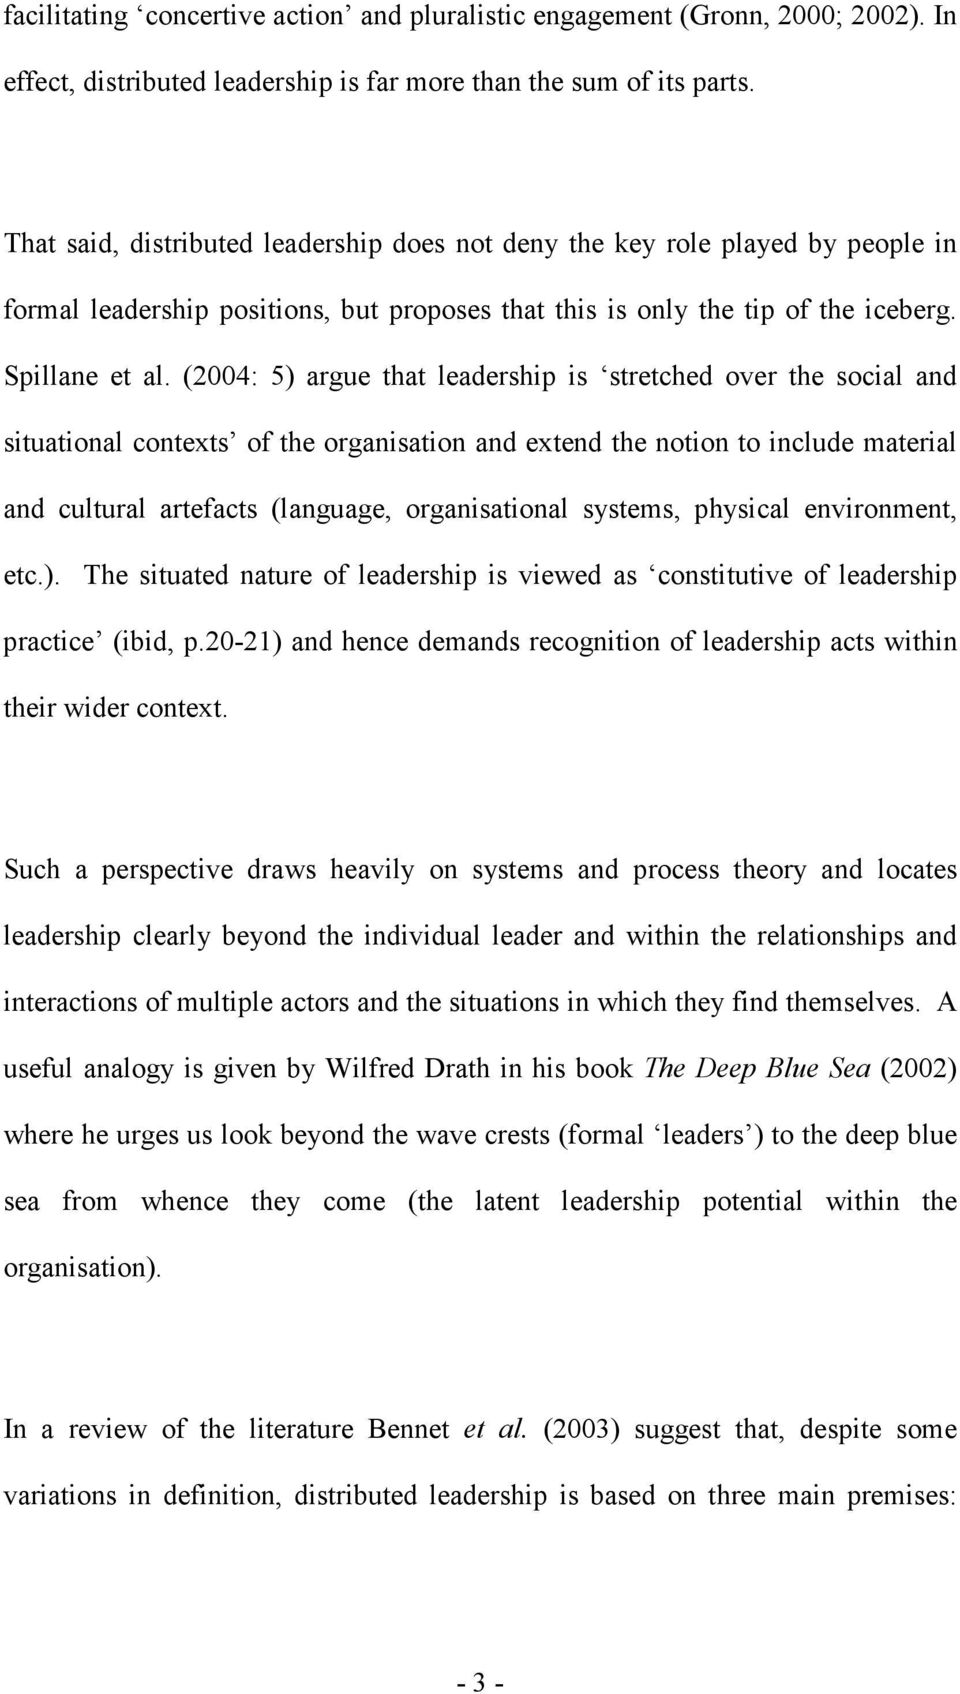 (2004: 5) argue that leadership is stretched over the social and situational contexts of the organisation and extend the notion to include material and cultural artefacts (language, organisational